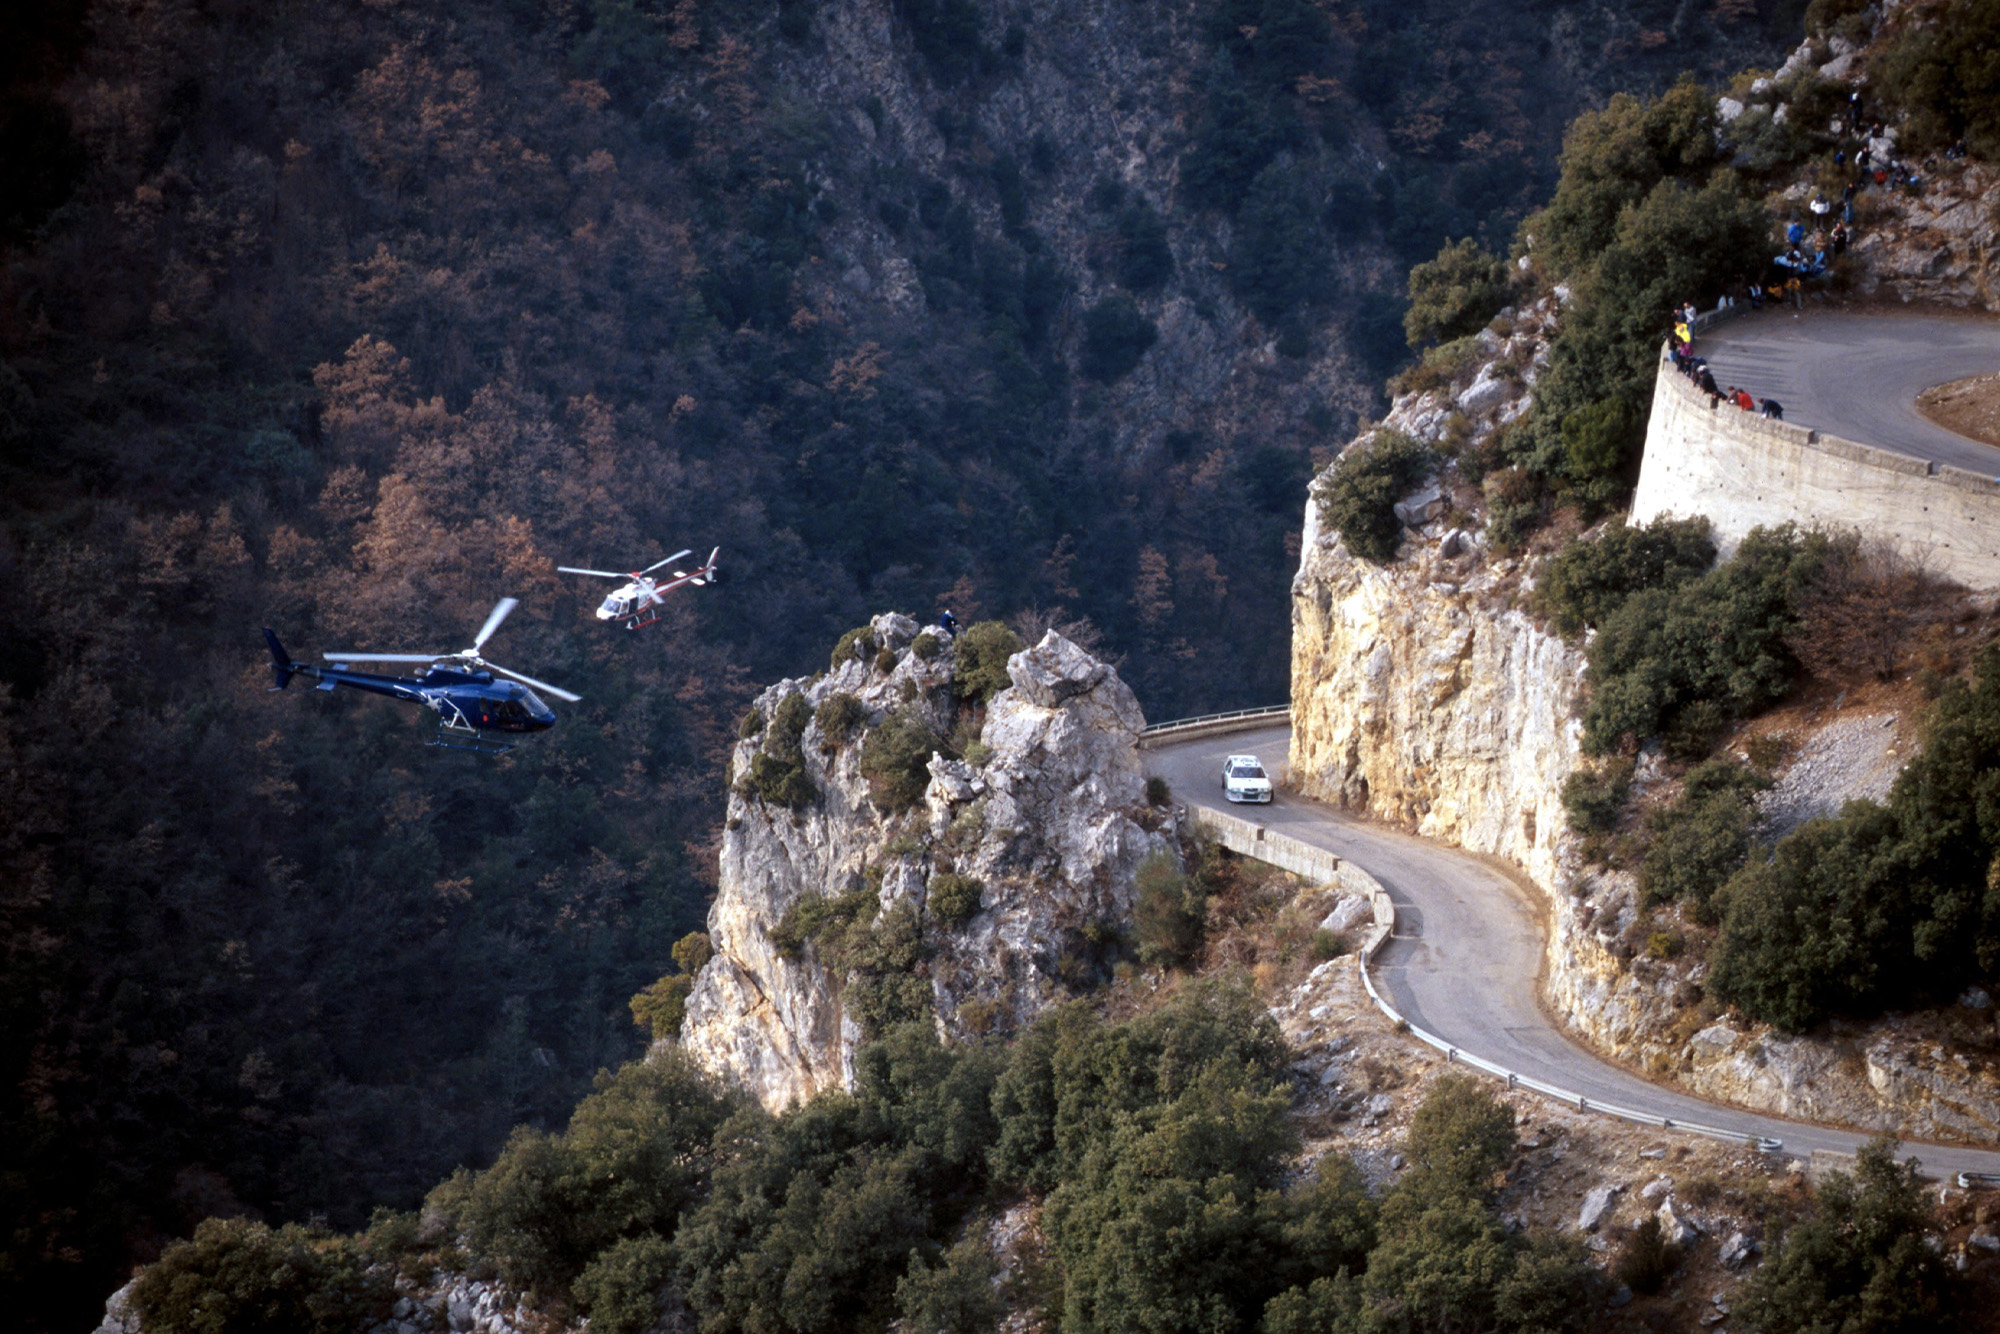 A Skoda WRC is tracked by helicopters during the 2002 Monte Carlo Rally